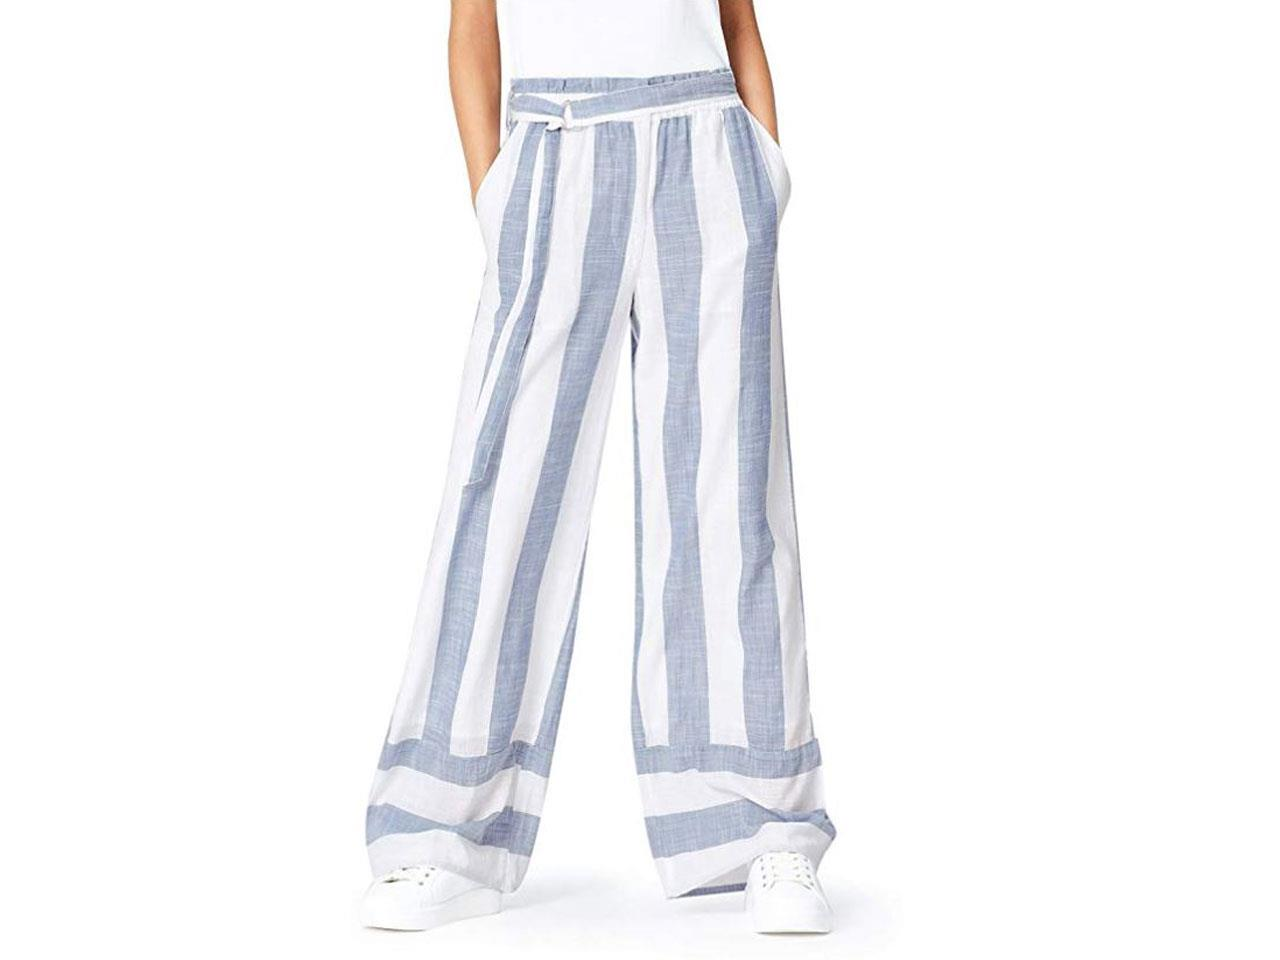 amazon prime day 2019 pantalones Amazon Find., c.p.v. (antes 27,00€)